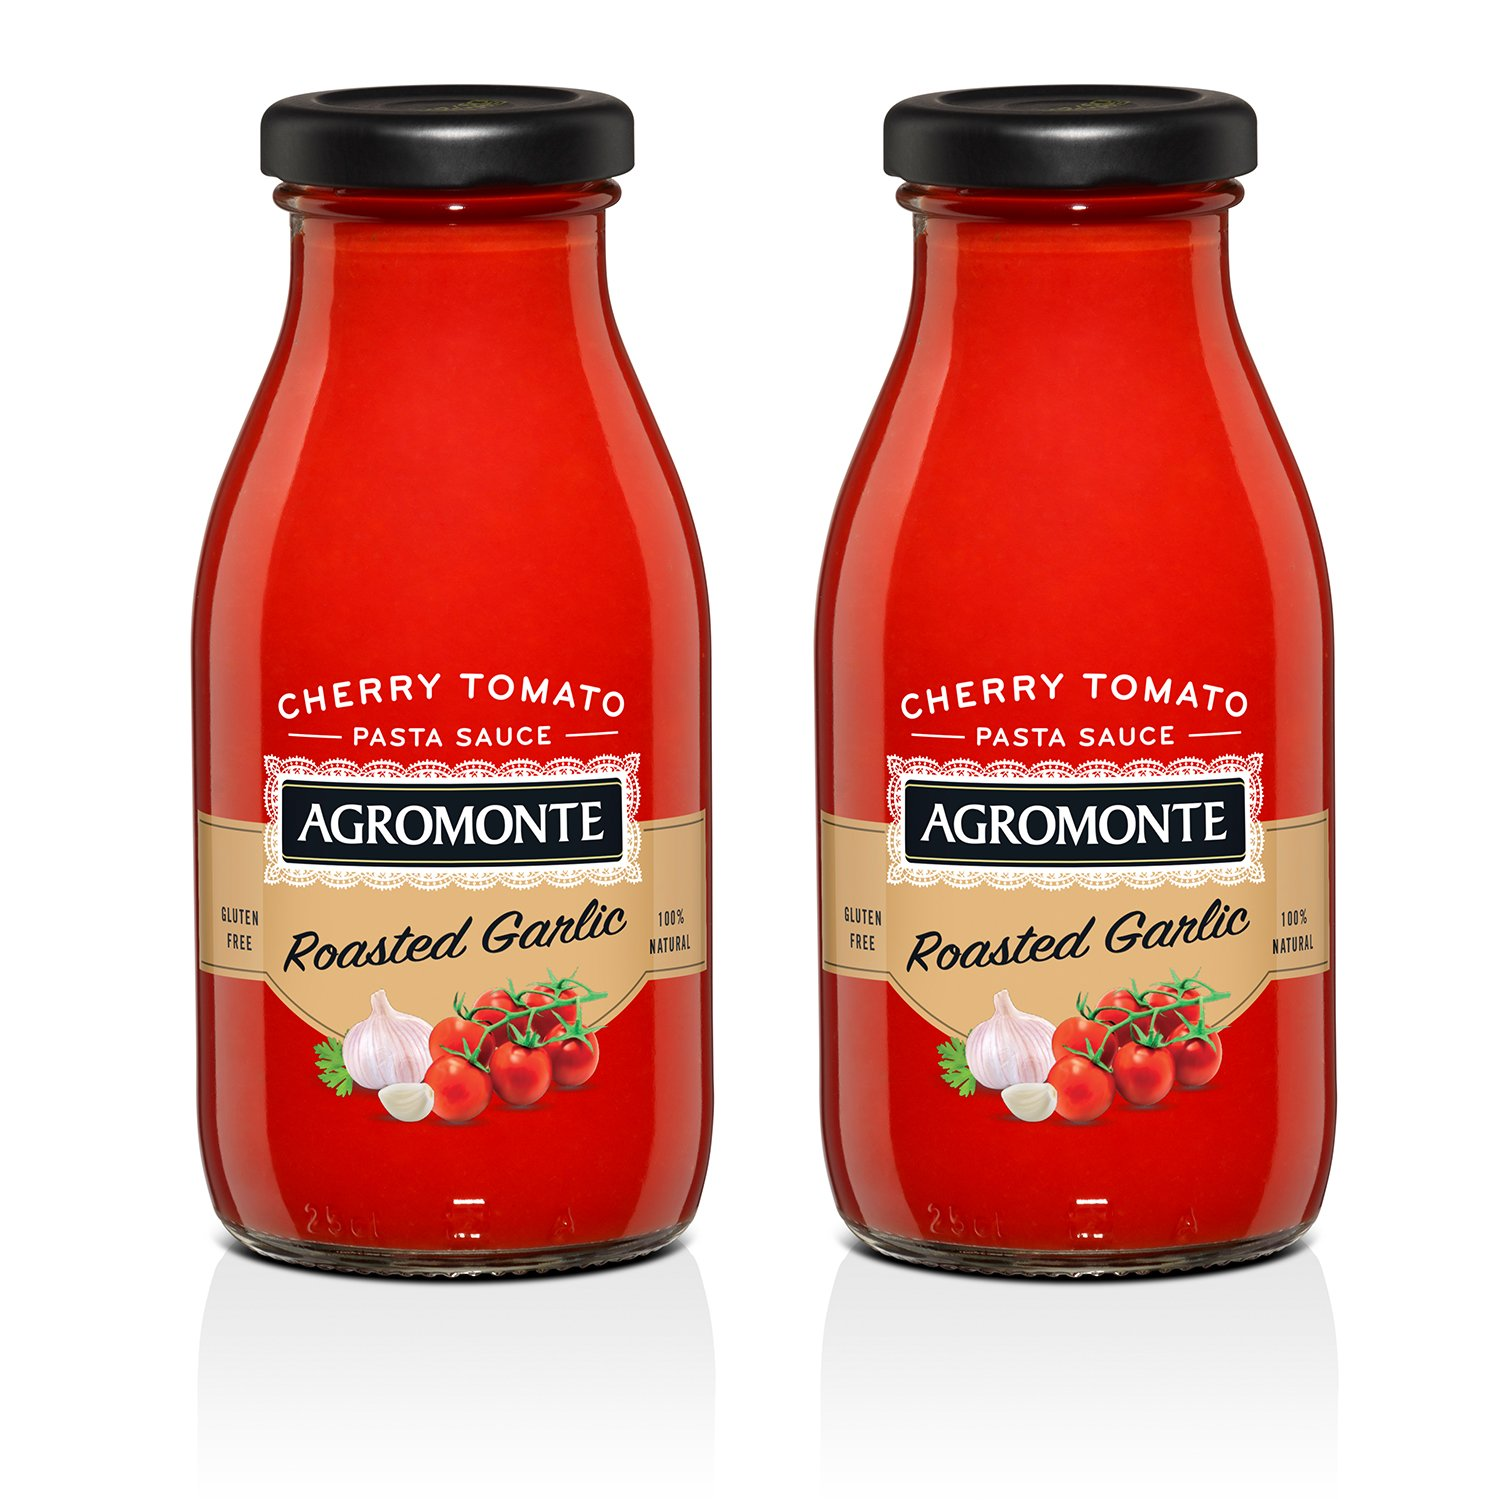 Agromonte Authentic Italian Cherry Tomato Sauce (Roasted Garlic, 2 Pack) by Agromonte